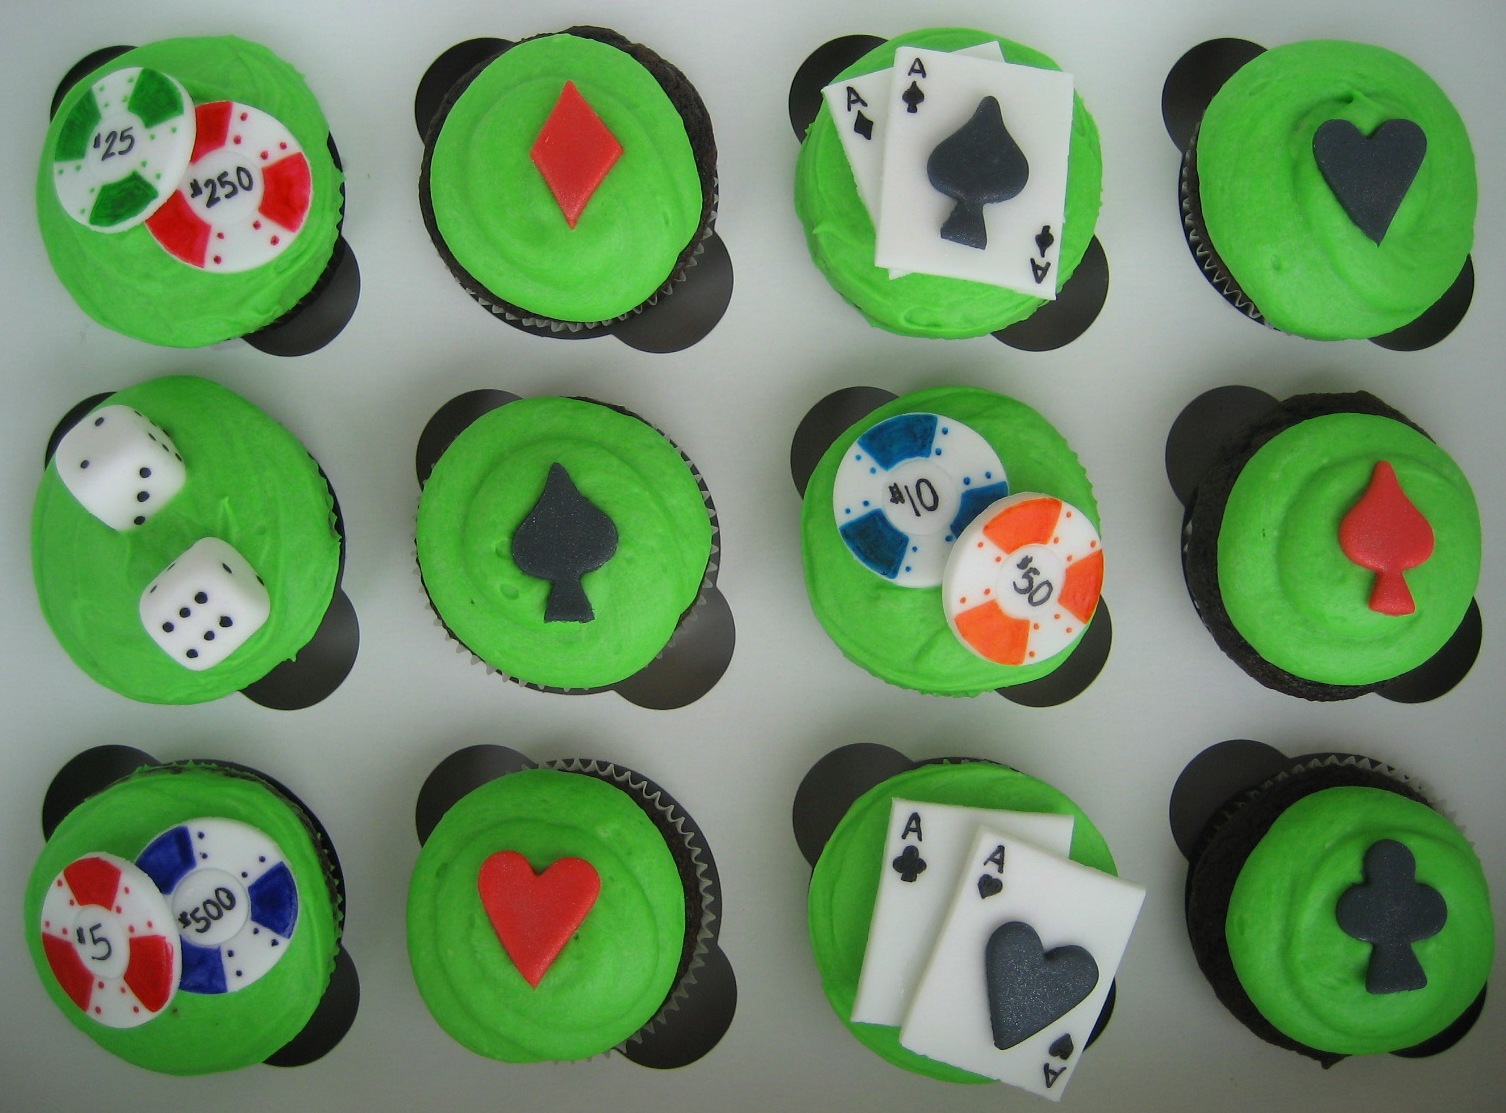 poker-cards-casino-theme-cakes-cupcakes-mumbai-14